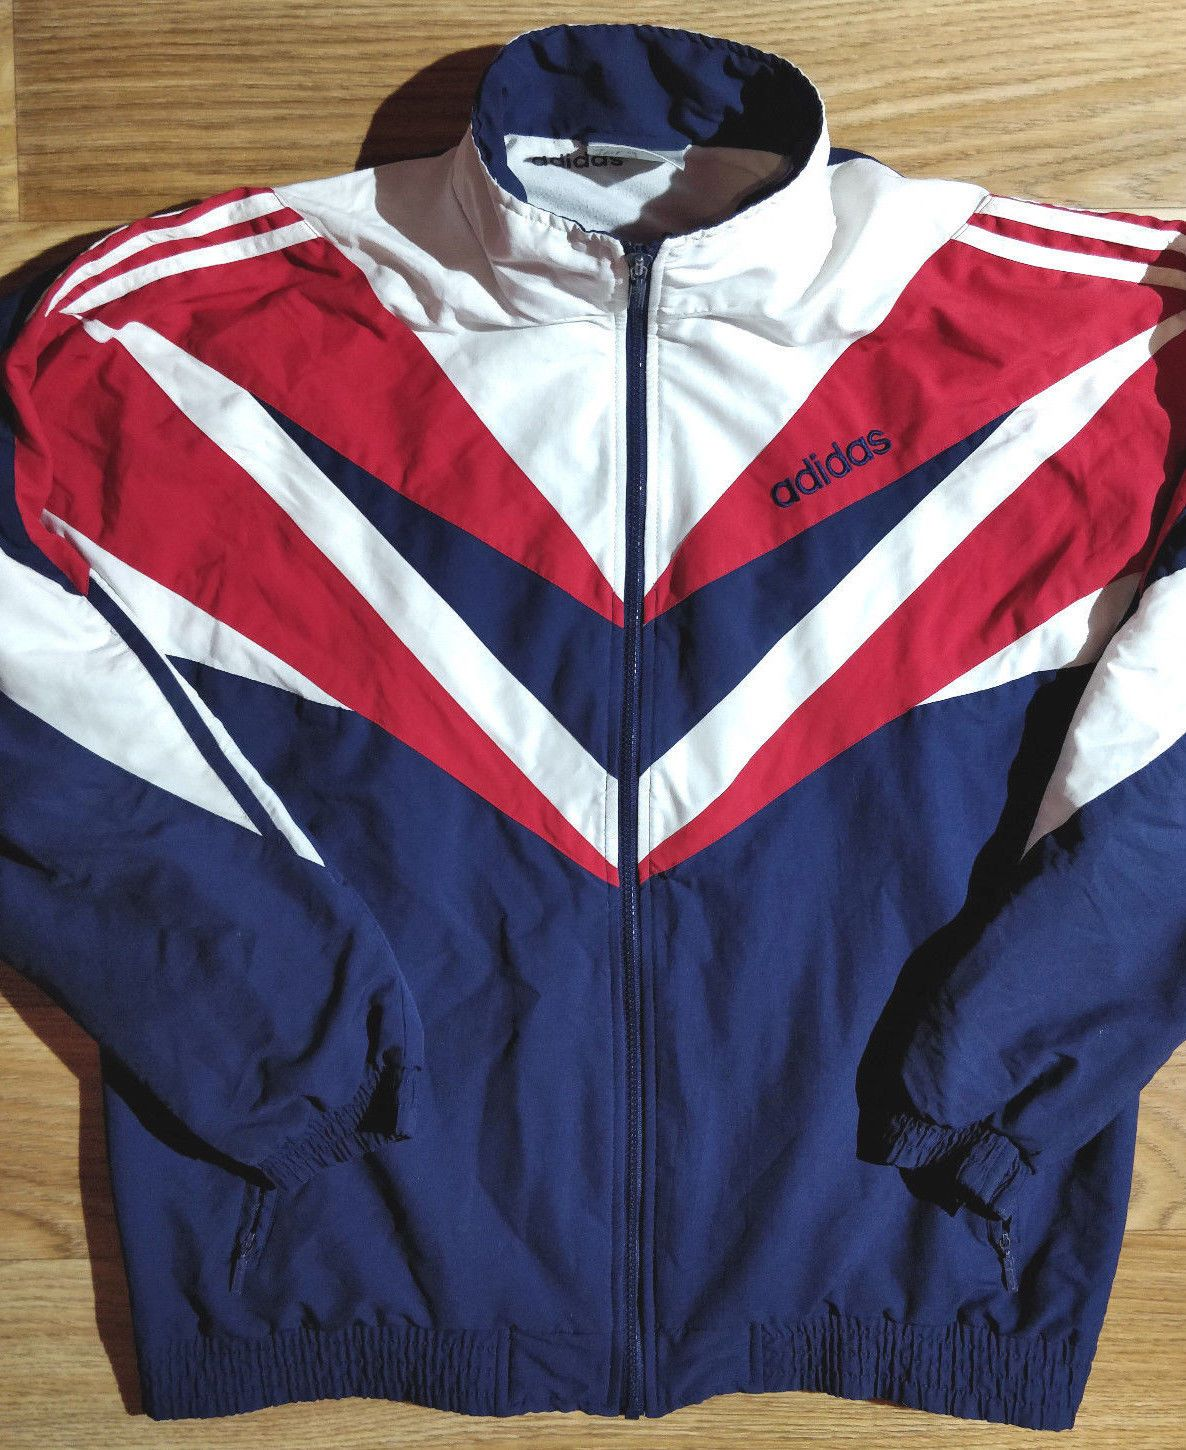 Adidas Originals 90 s Vintage Mens Tracksuit Top Jacket in 2019 ... e64244cd97